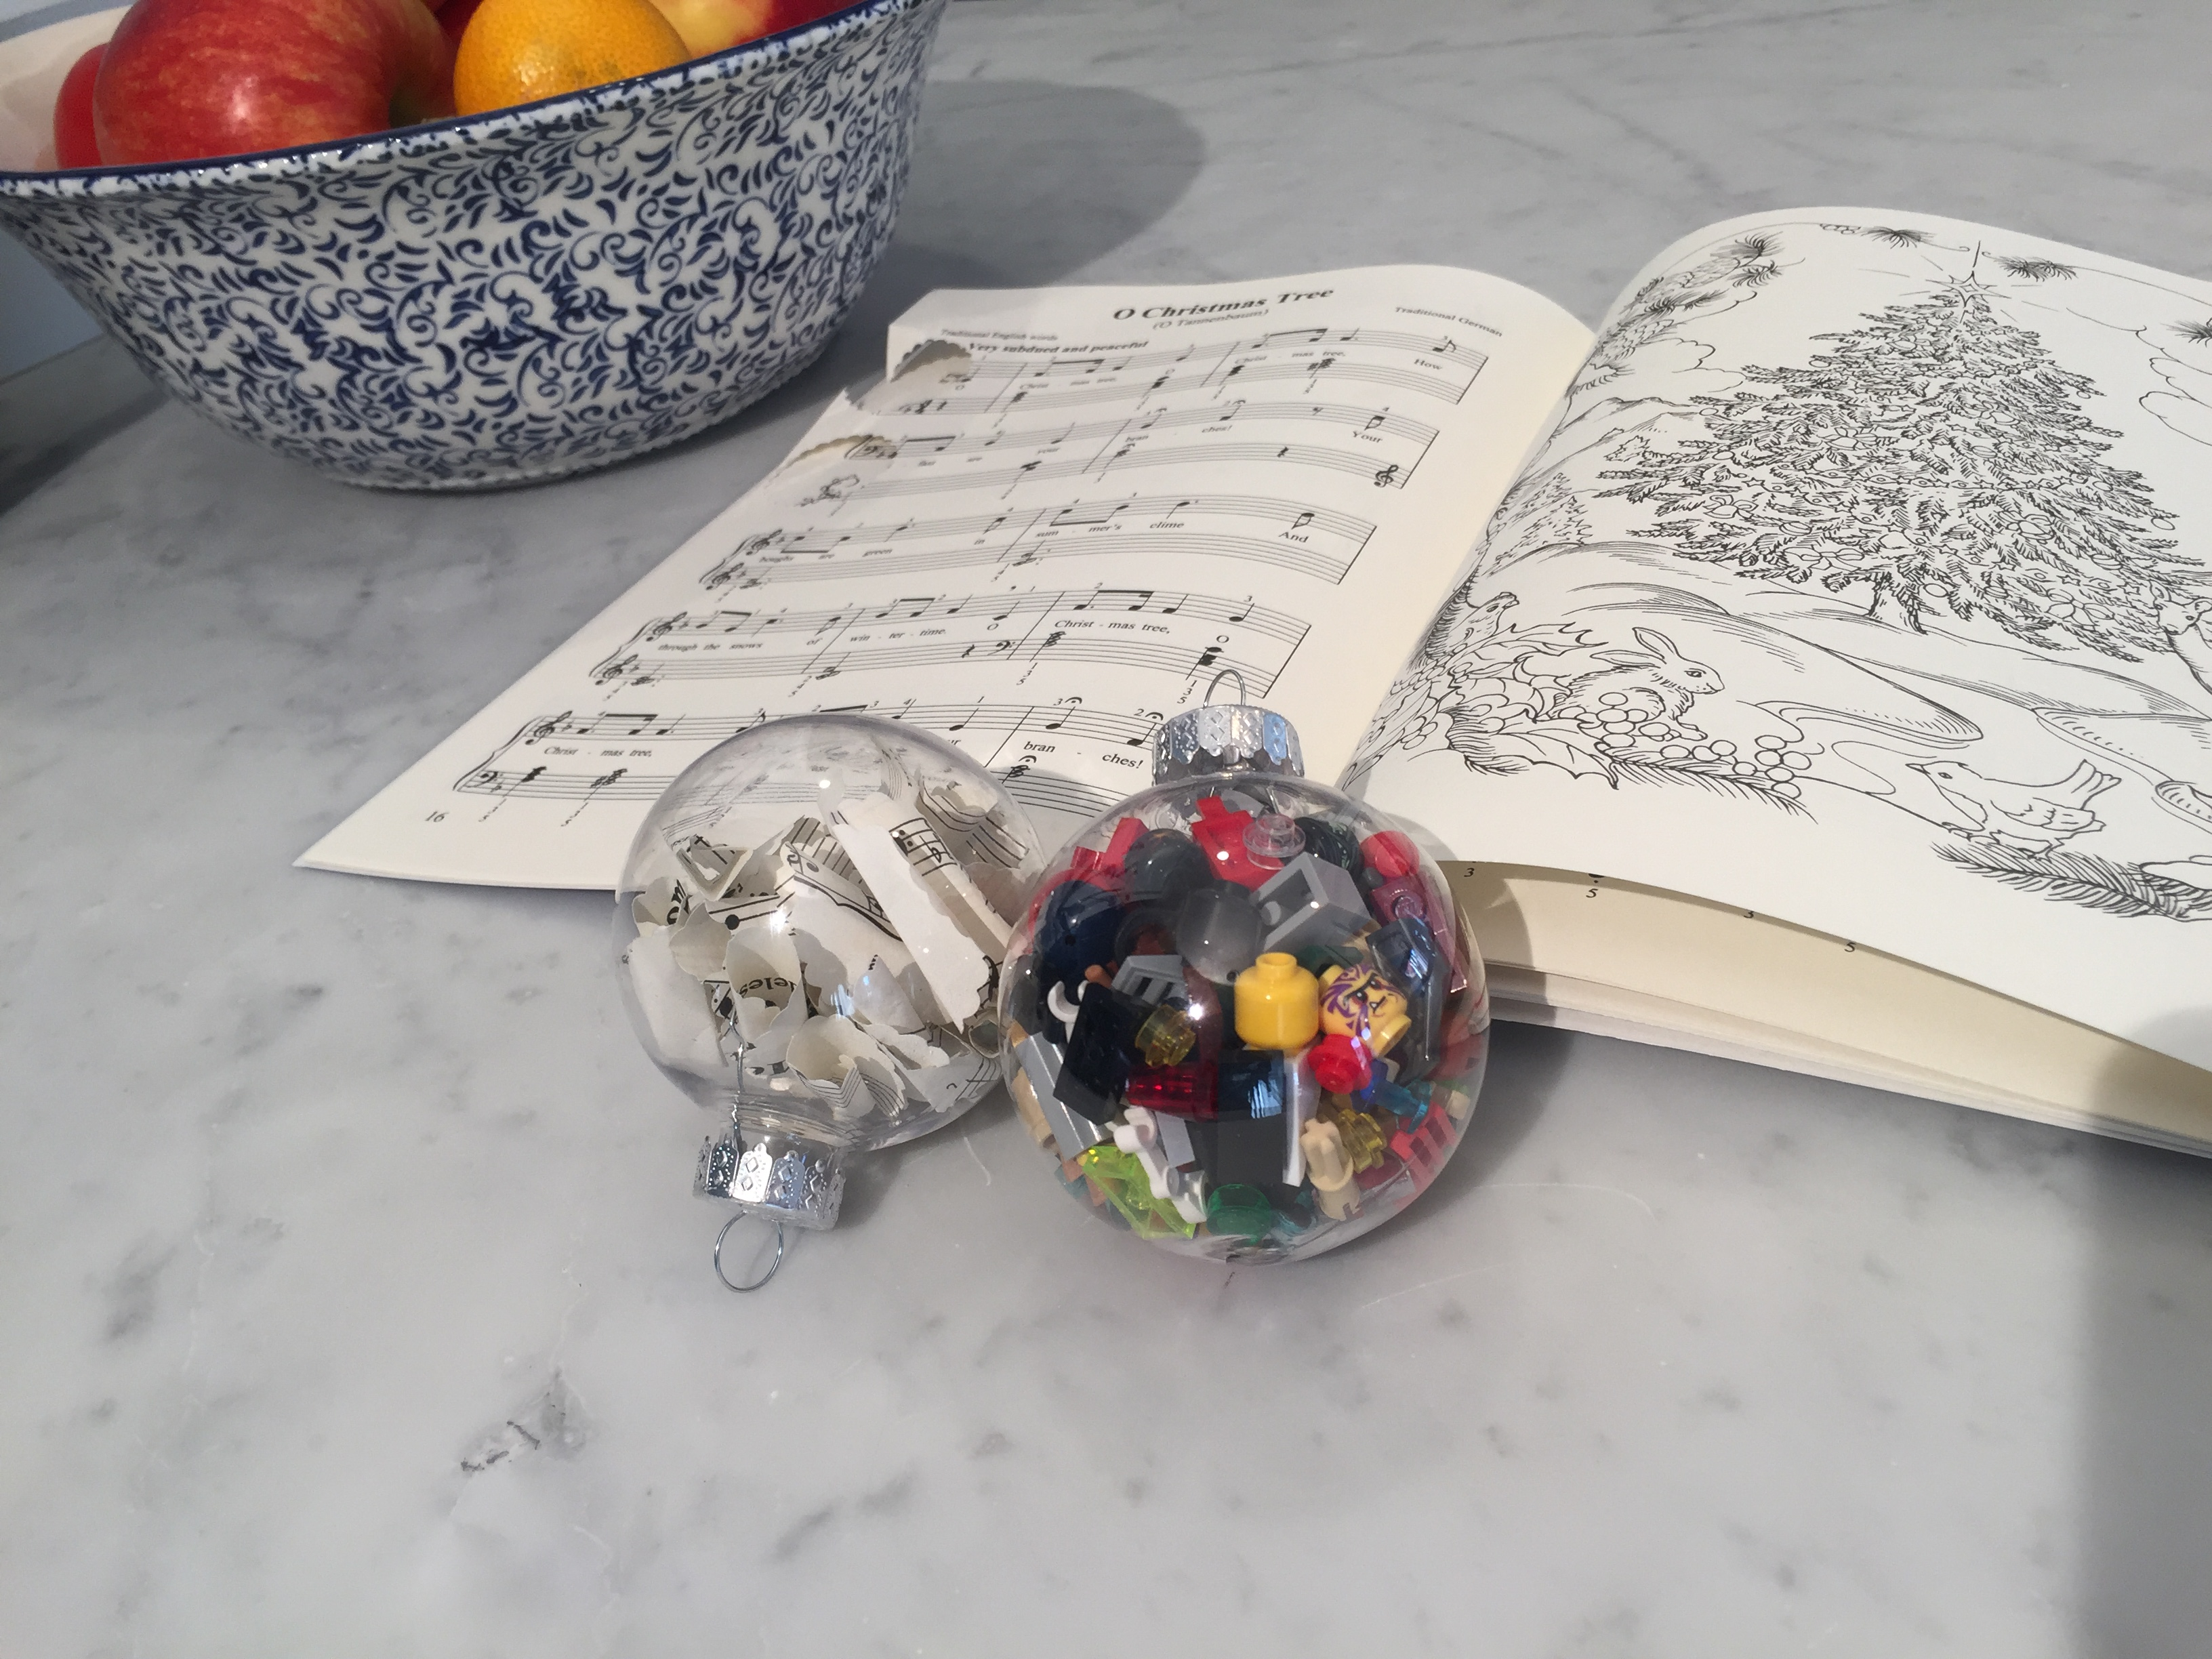 DIY Christmas Ornaments Filled with Sheet Music and Legos